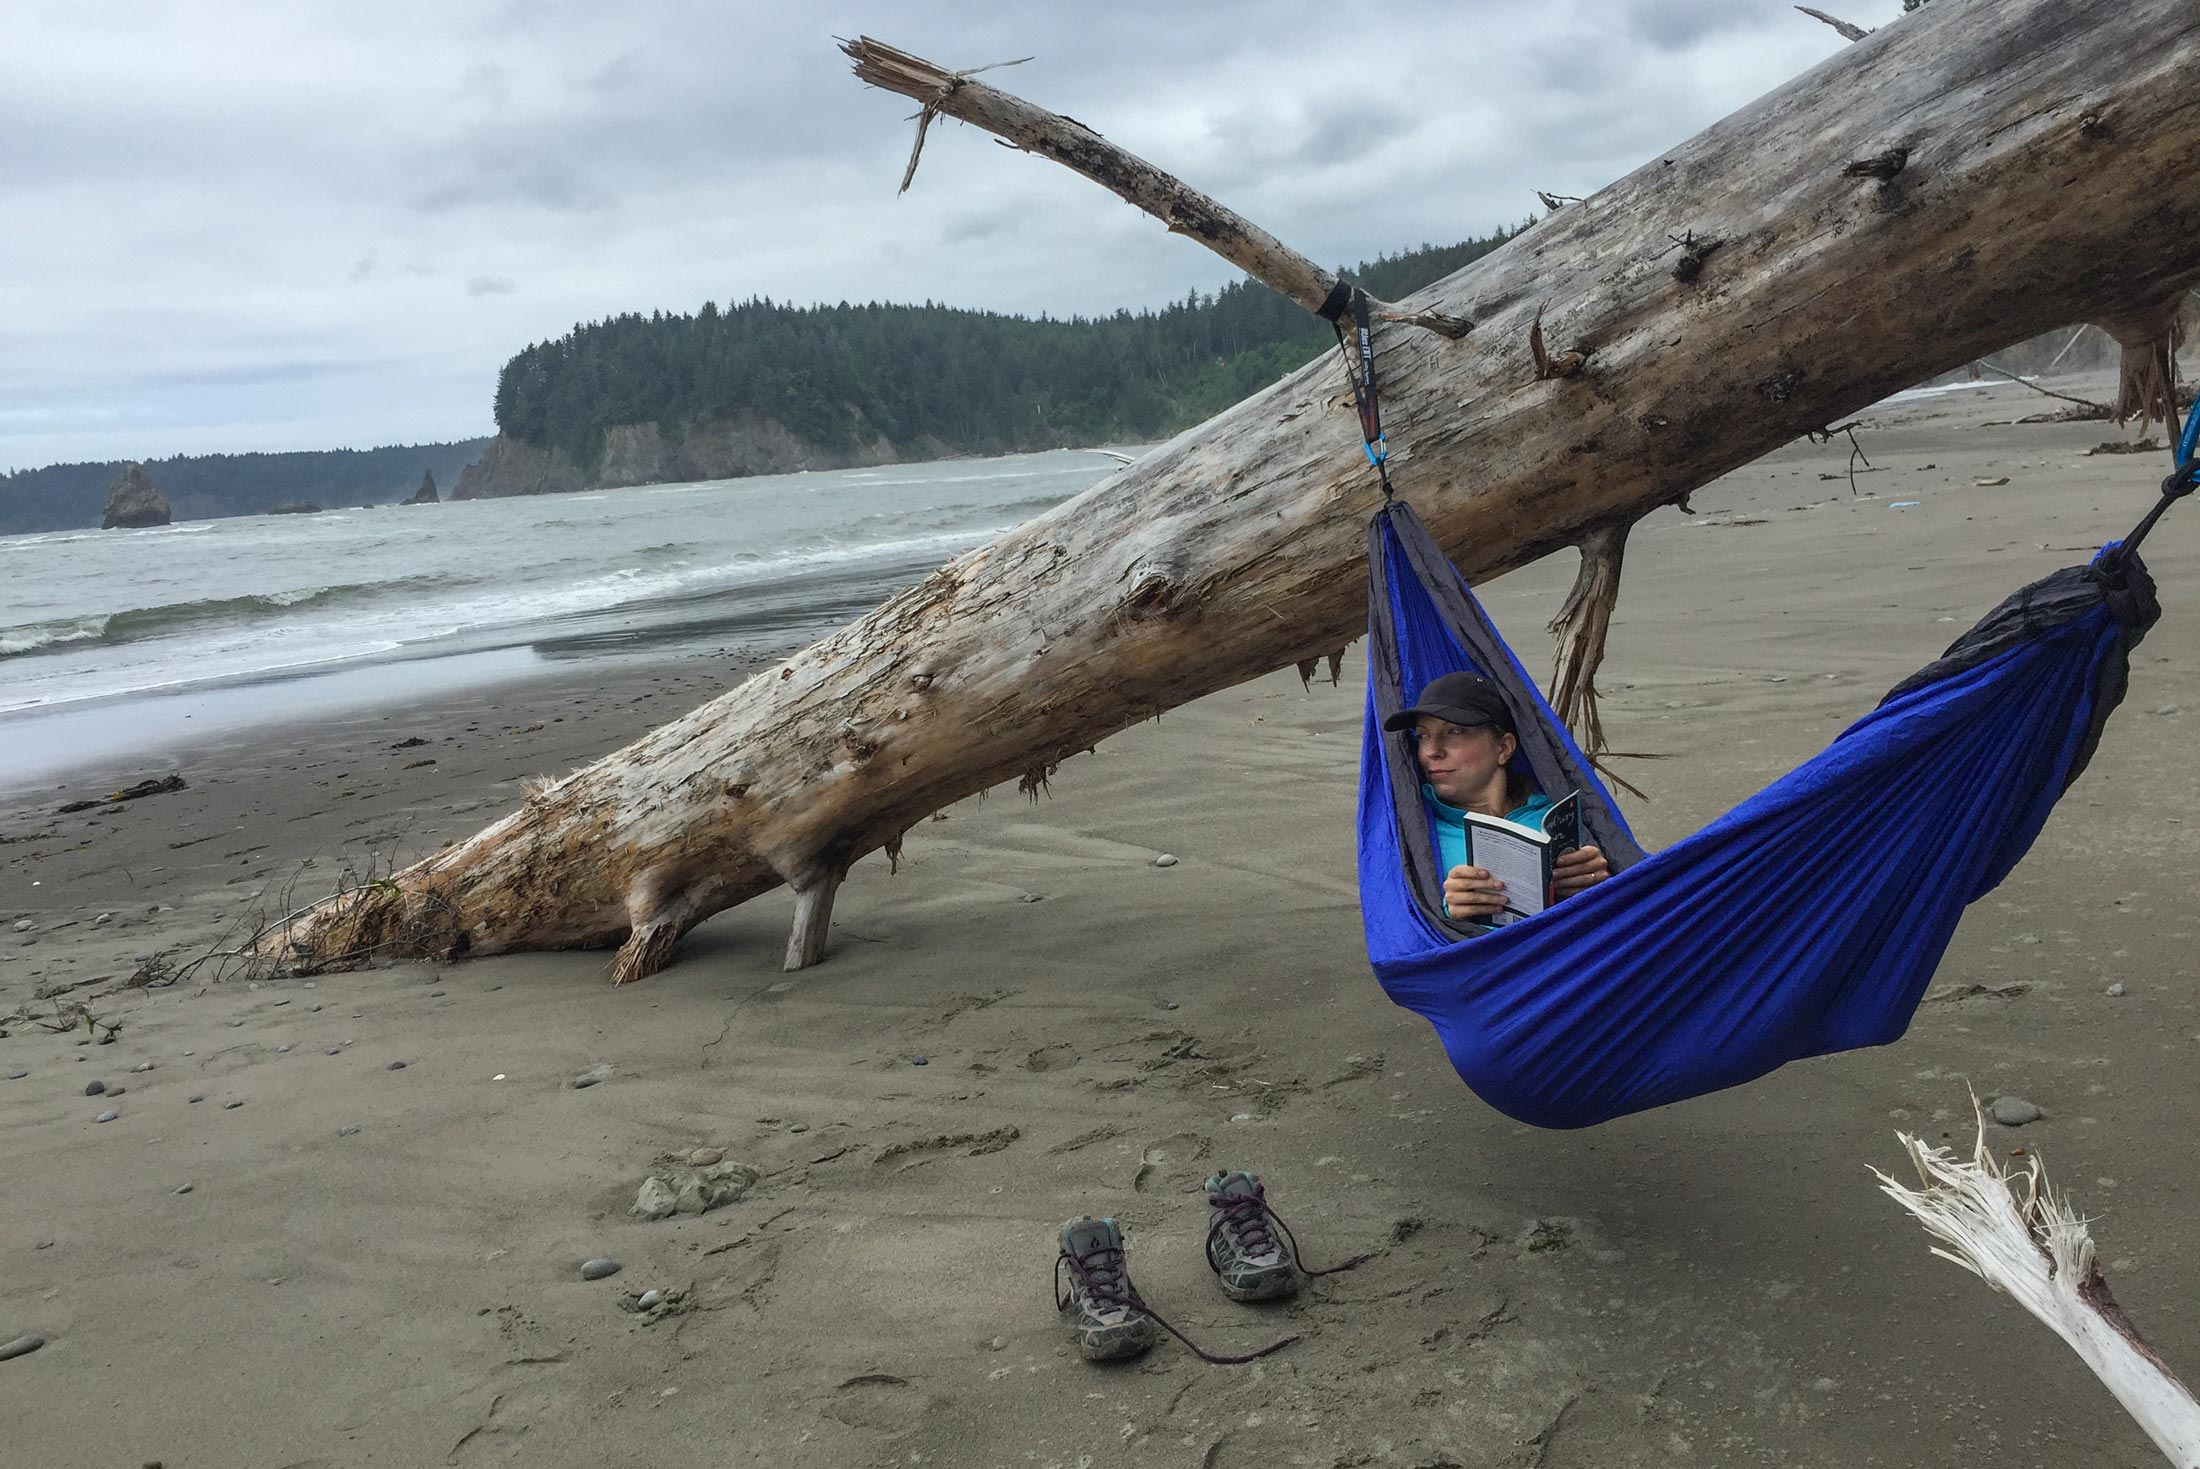 Hop in the hammock and wait out the tide.